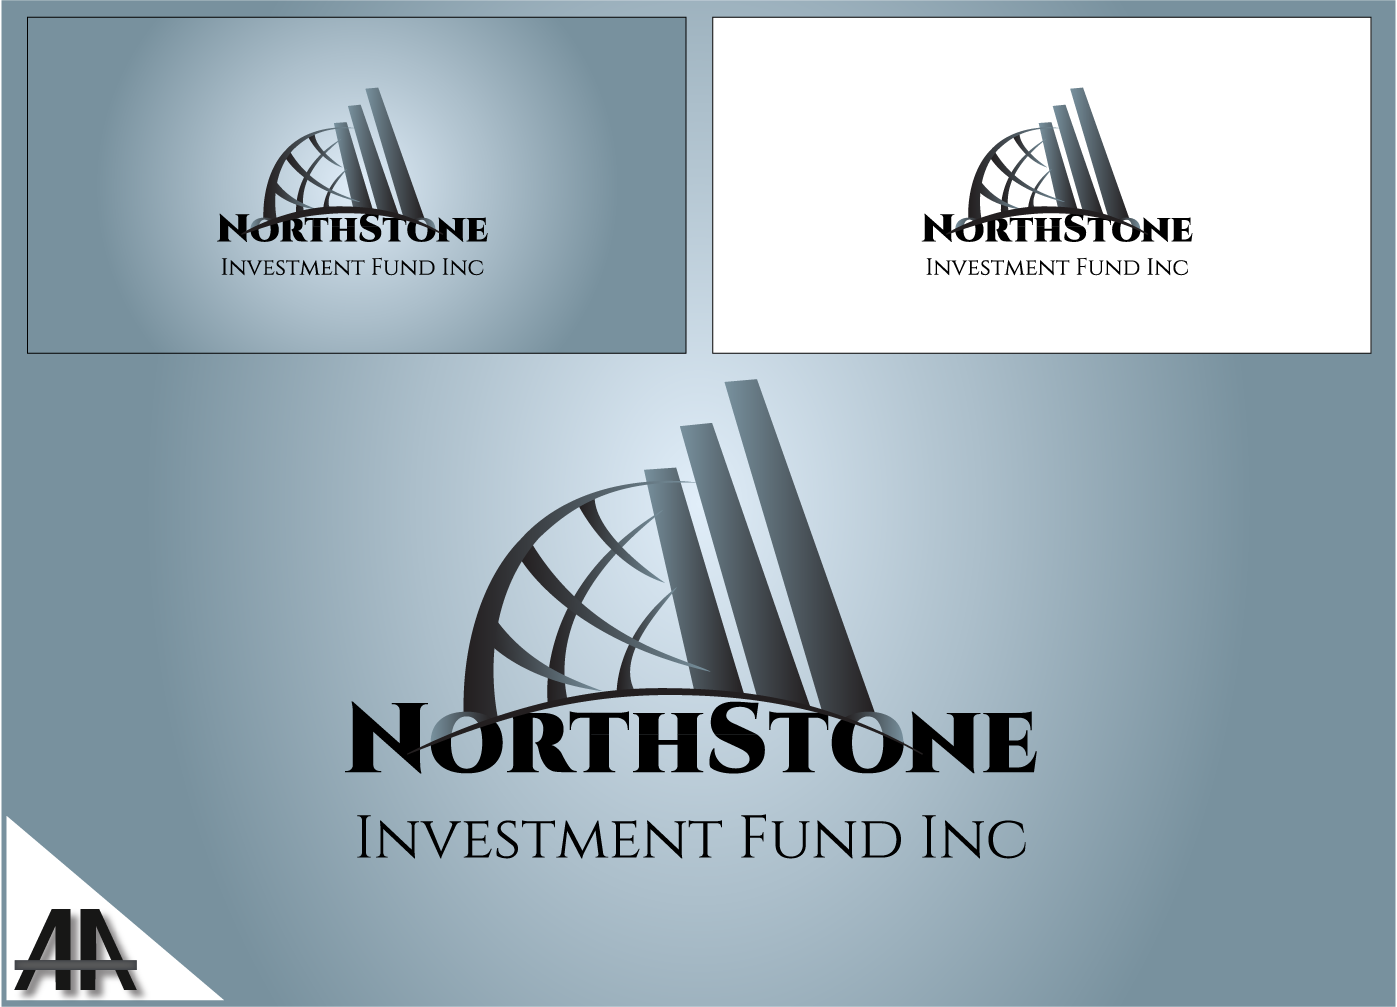 Logo Design by Thanasis Athanasopoulos - Entry No. 81 in the Logo Design Contest Unique Logo Design Wanted for NorthStone Investment Fund Inc.